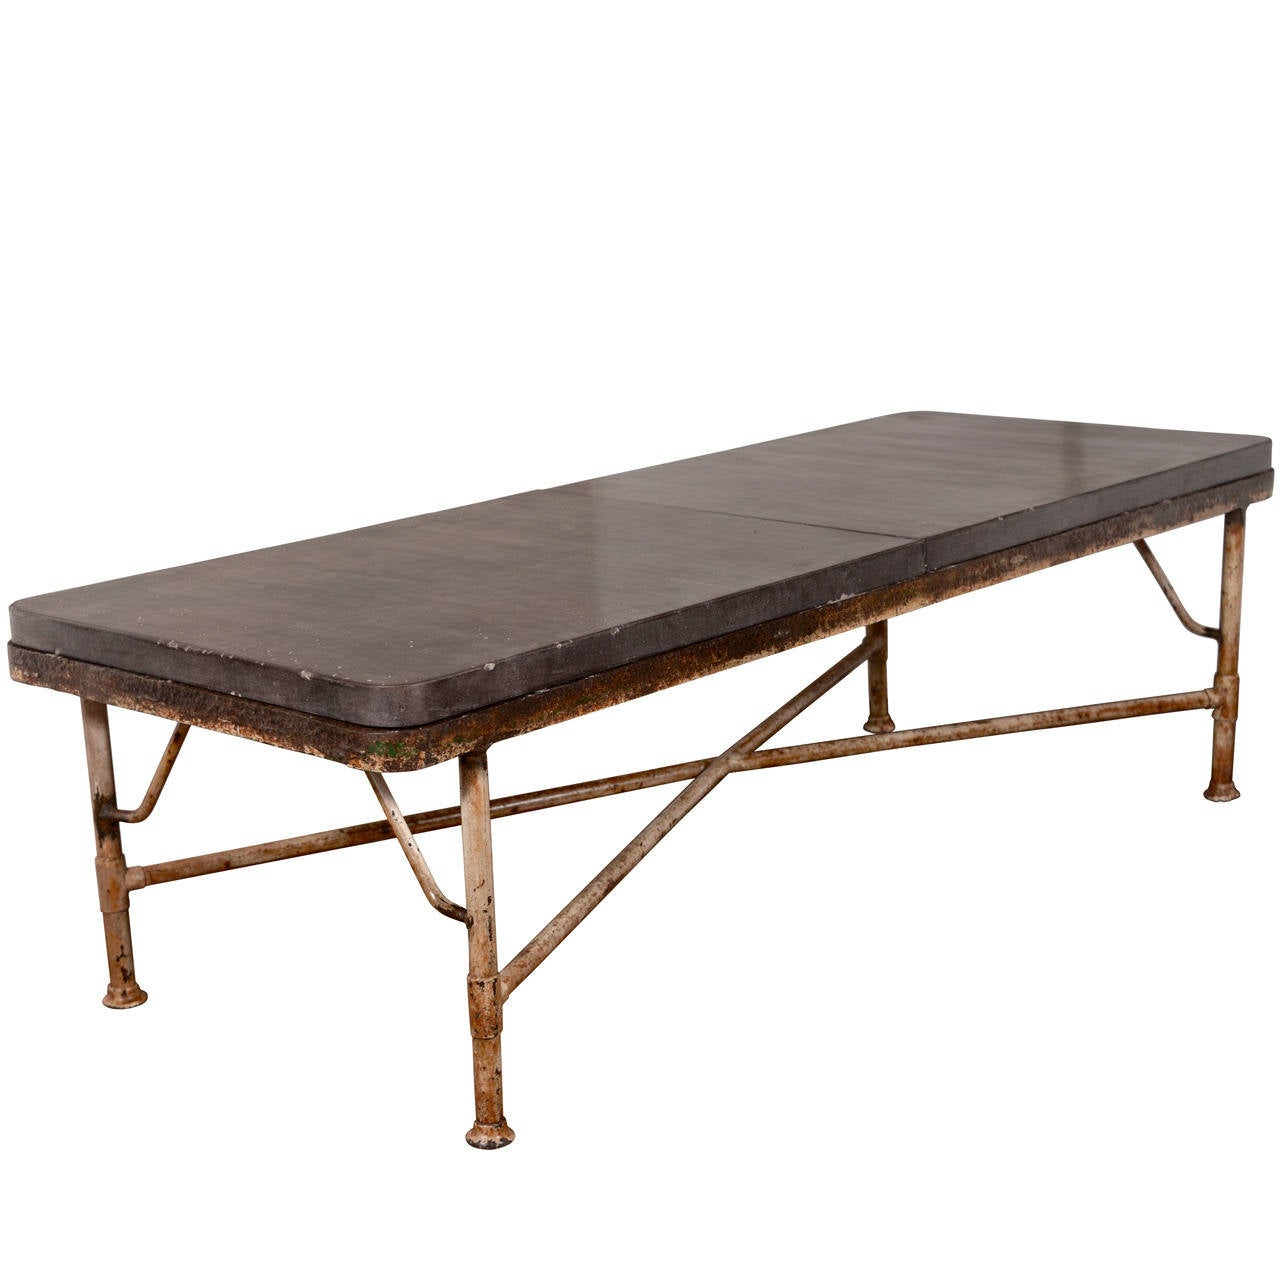 Industrial Transitional Coffee Table With Steel Base With Limestone Top At 1stdibs